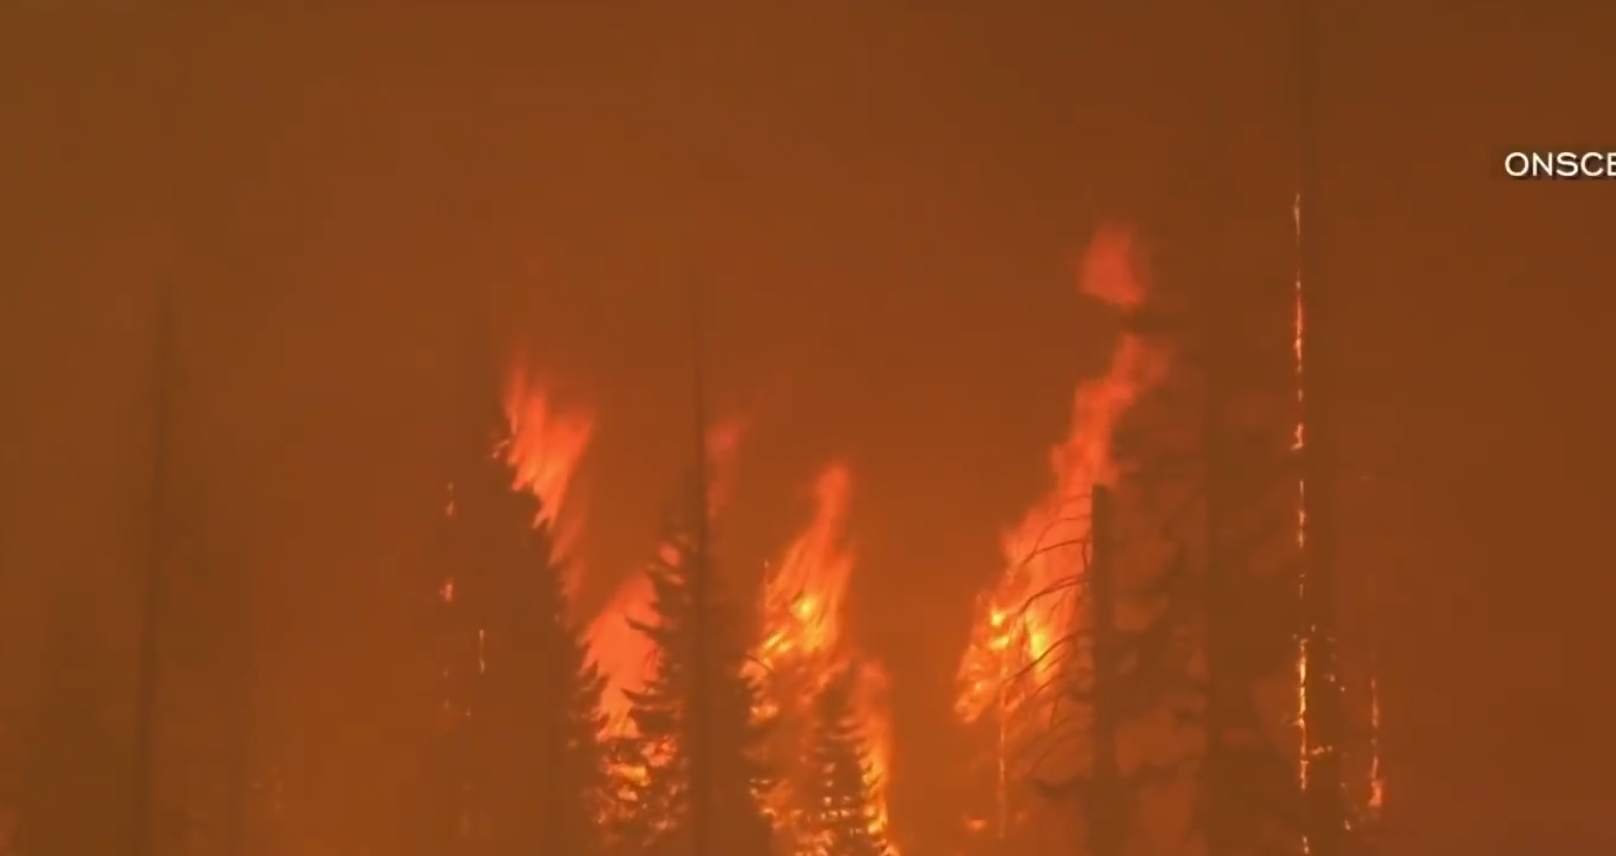 Fact Checkers And FBI Say No Arson Involvement In Western State Fires But…